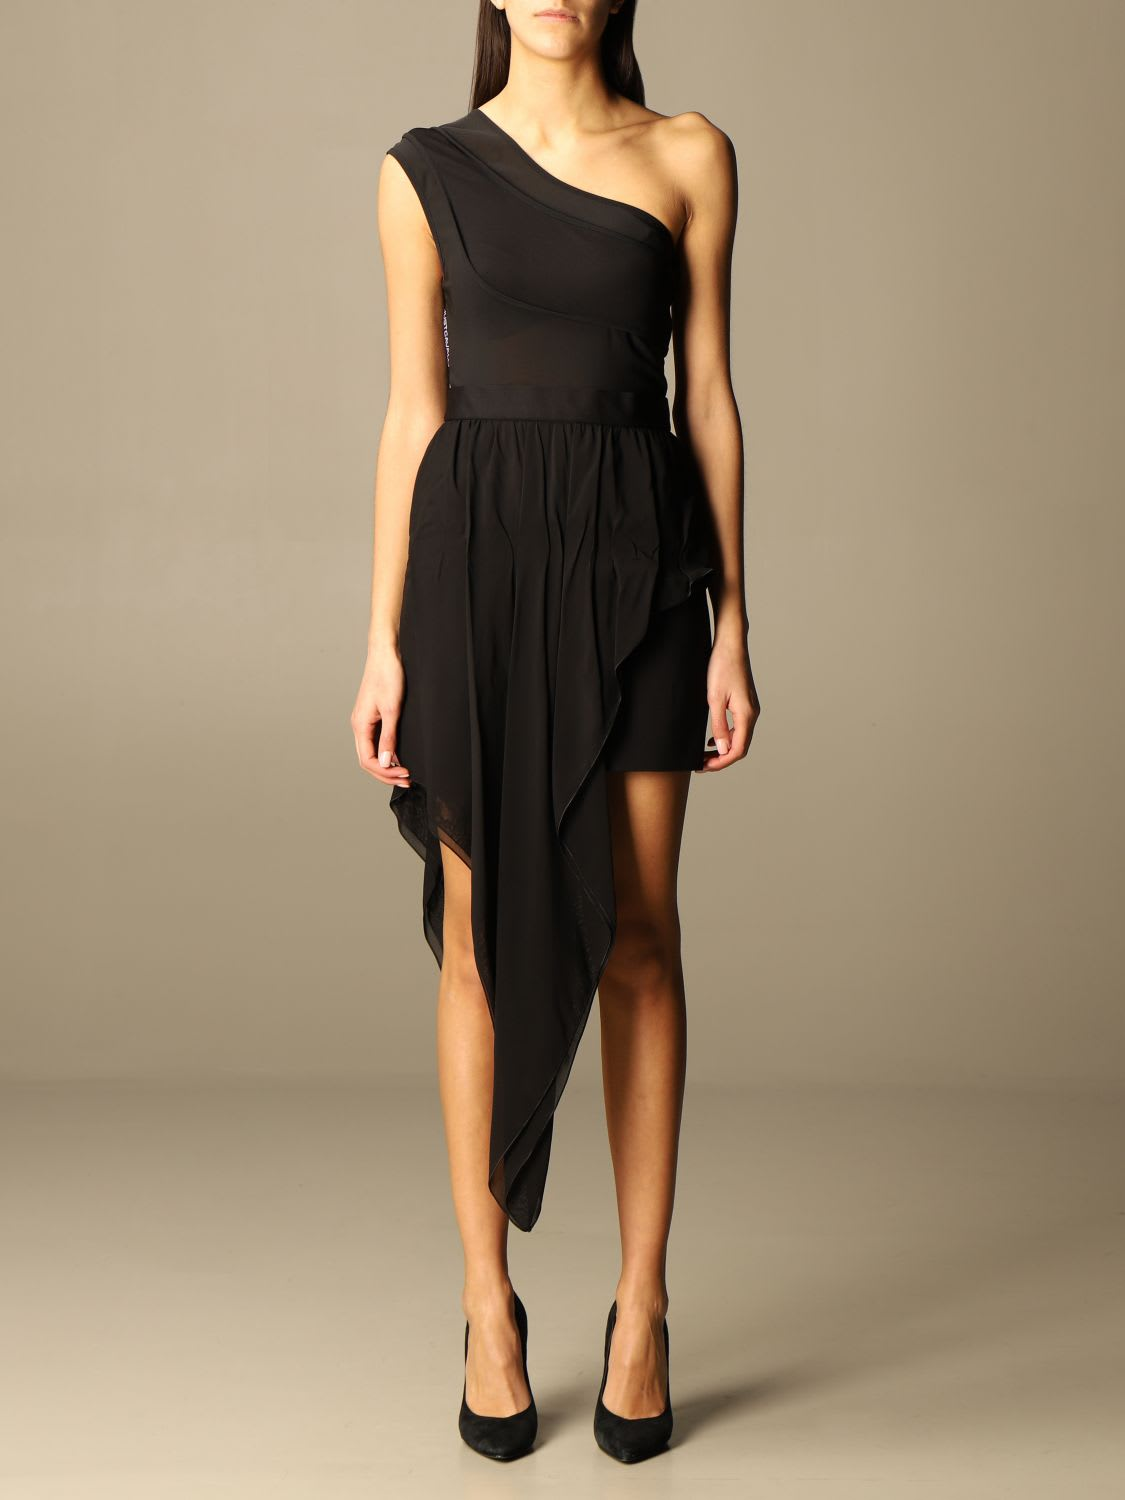 Buy Just Cavalli Dress Just Cavalli Dress With Asymmetrical Panel online, shop Just Cavalli with free shipping